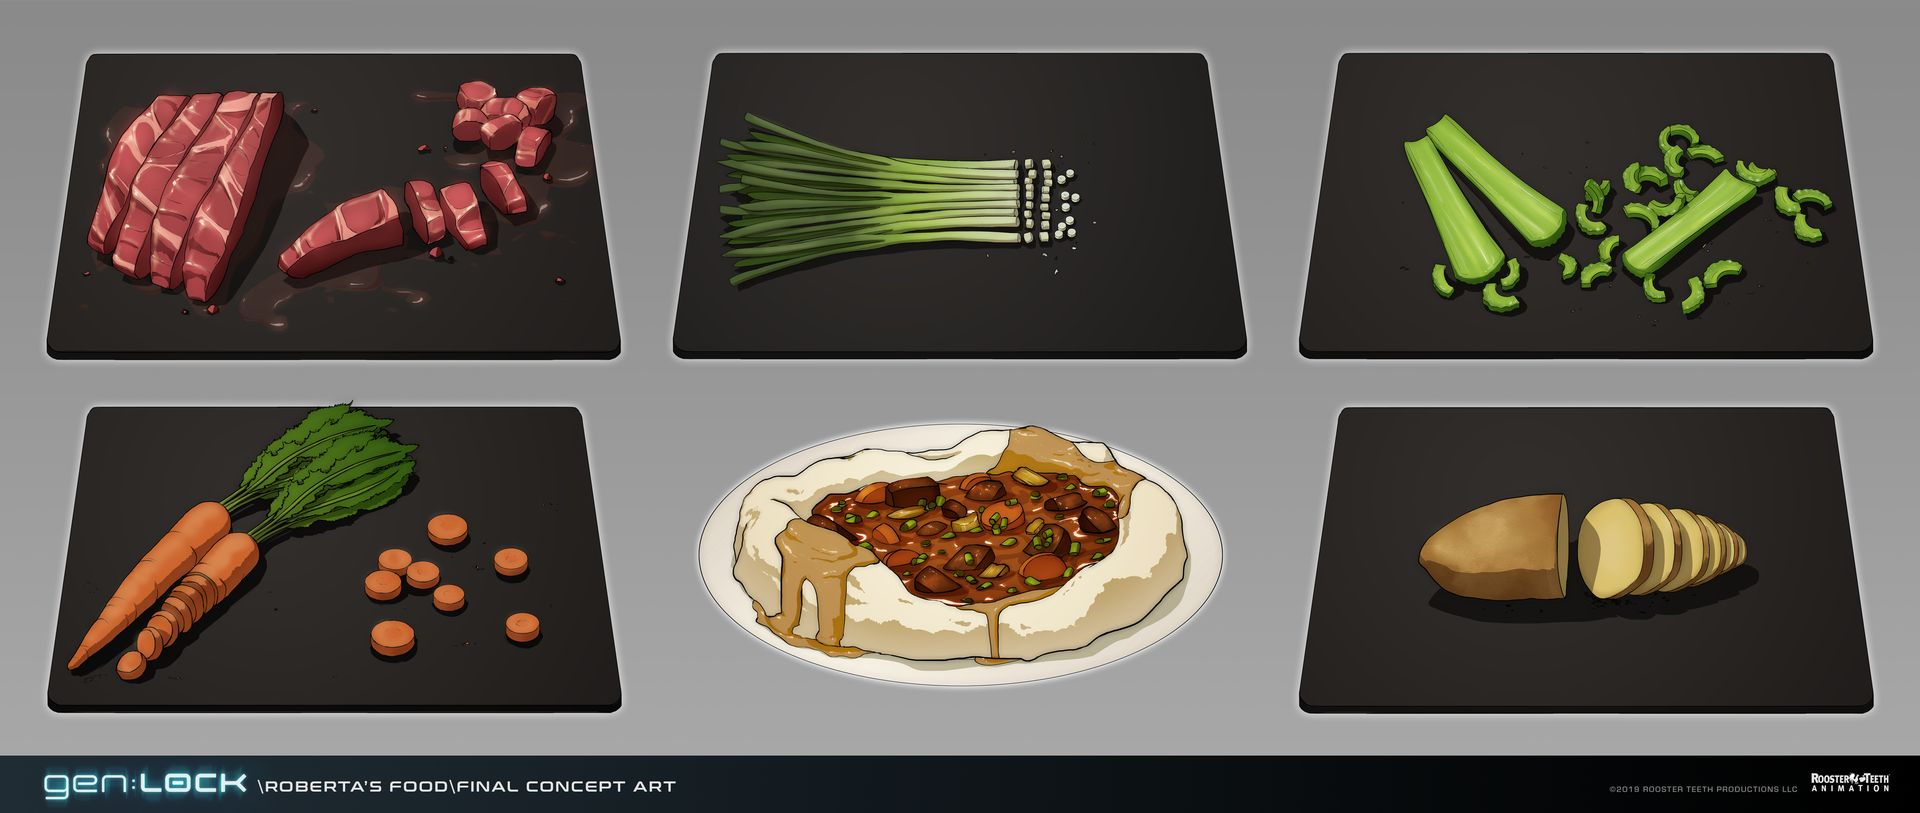 gen_lock__roberta_s_food_by_fang_ddbh1ix-fullview.jpg